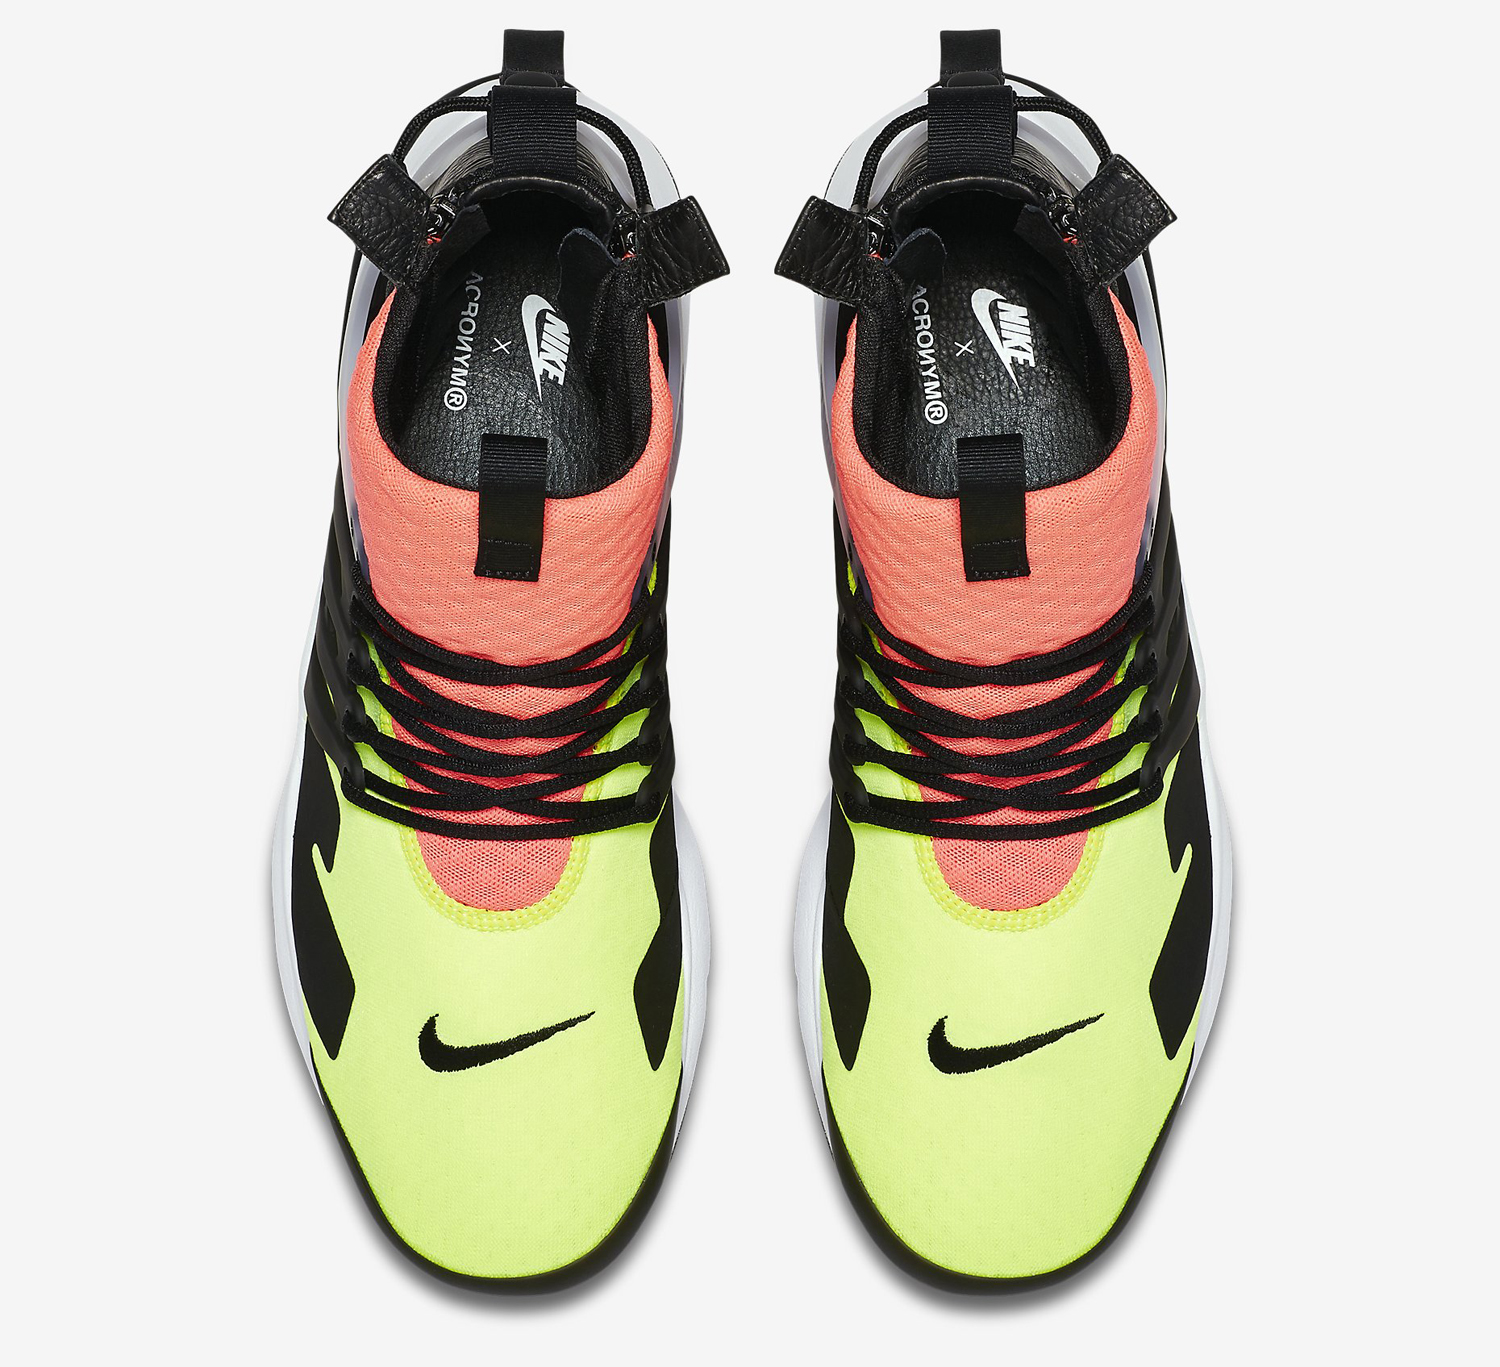 Acronym Nike Air Presto Hot Lava 844672-100 Top